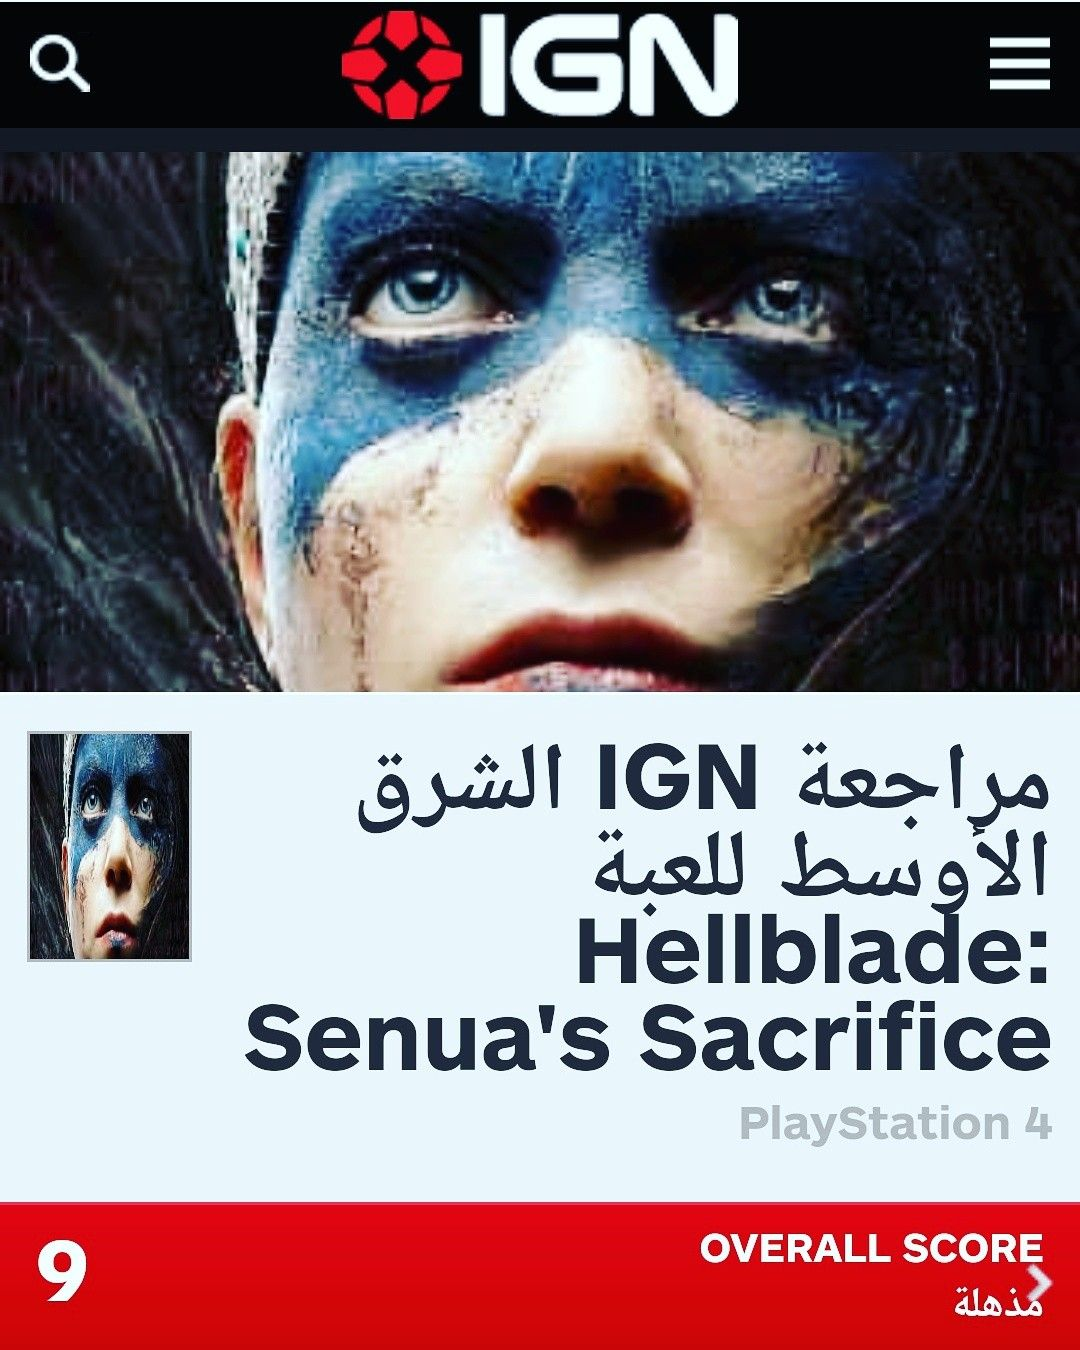 My Review For Hellblade Is Live Now At Ign Http Bit Ly 2vsiyvy Hellblade Ign Game Reviews Live In The Now Playstation 4